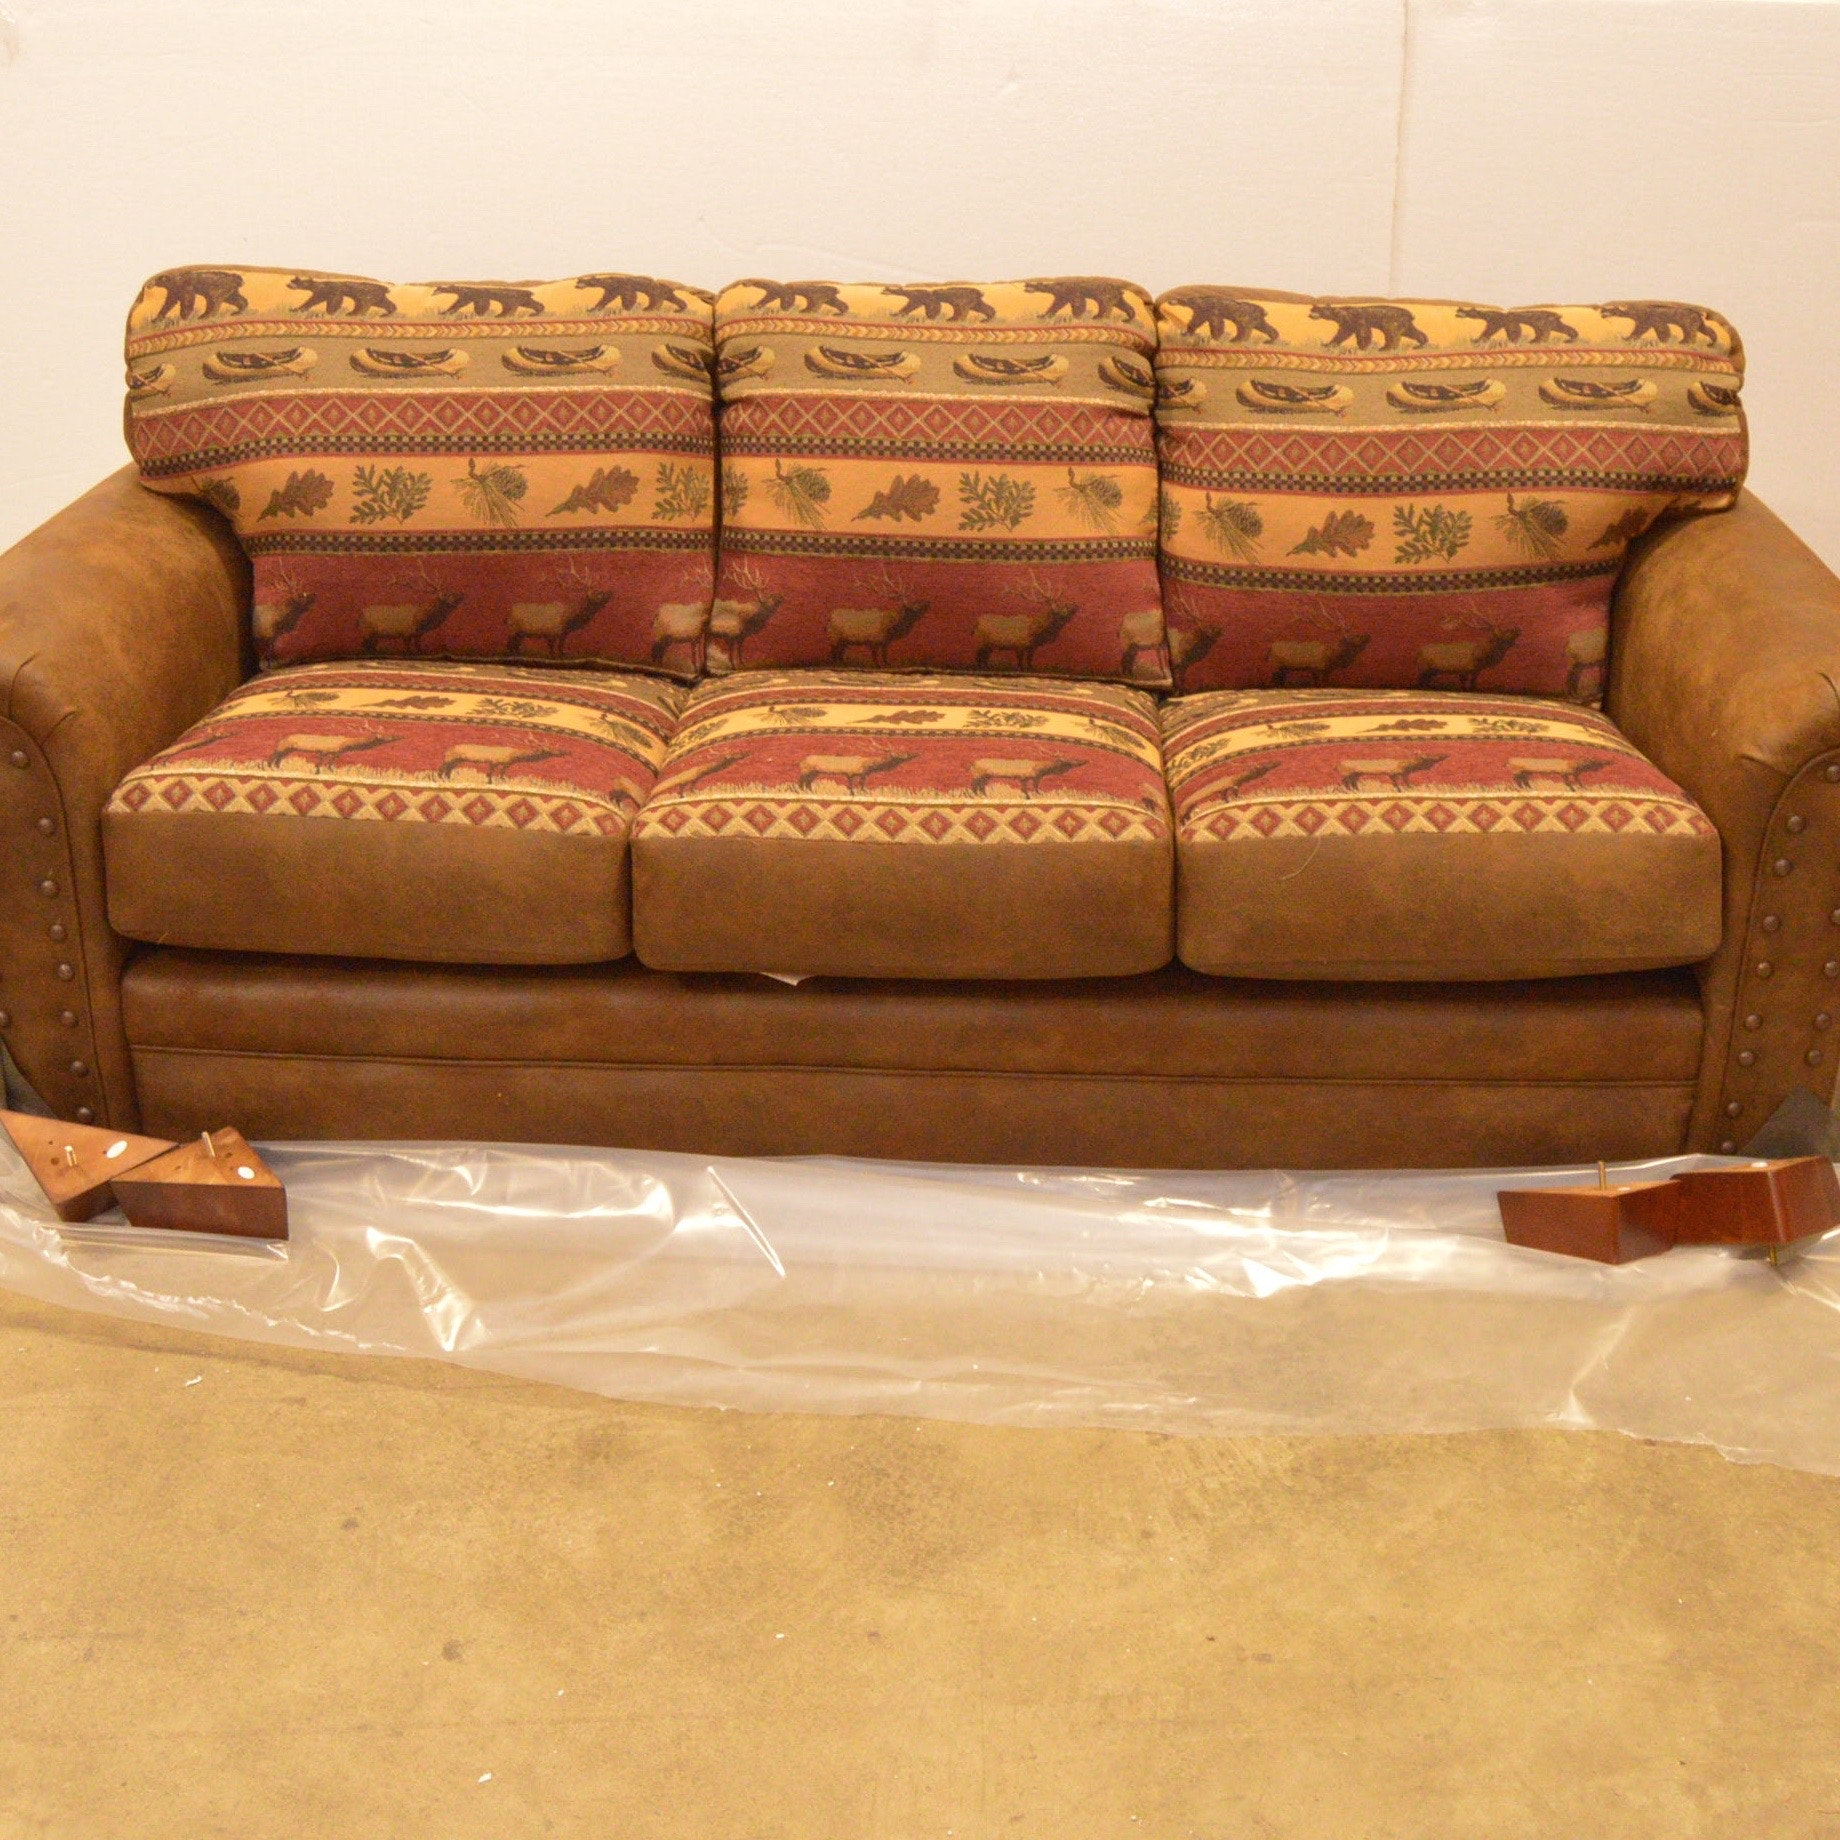 Sierra Leather Look Microfiber And Cotton Tapestry Sofa ...